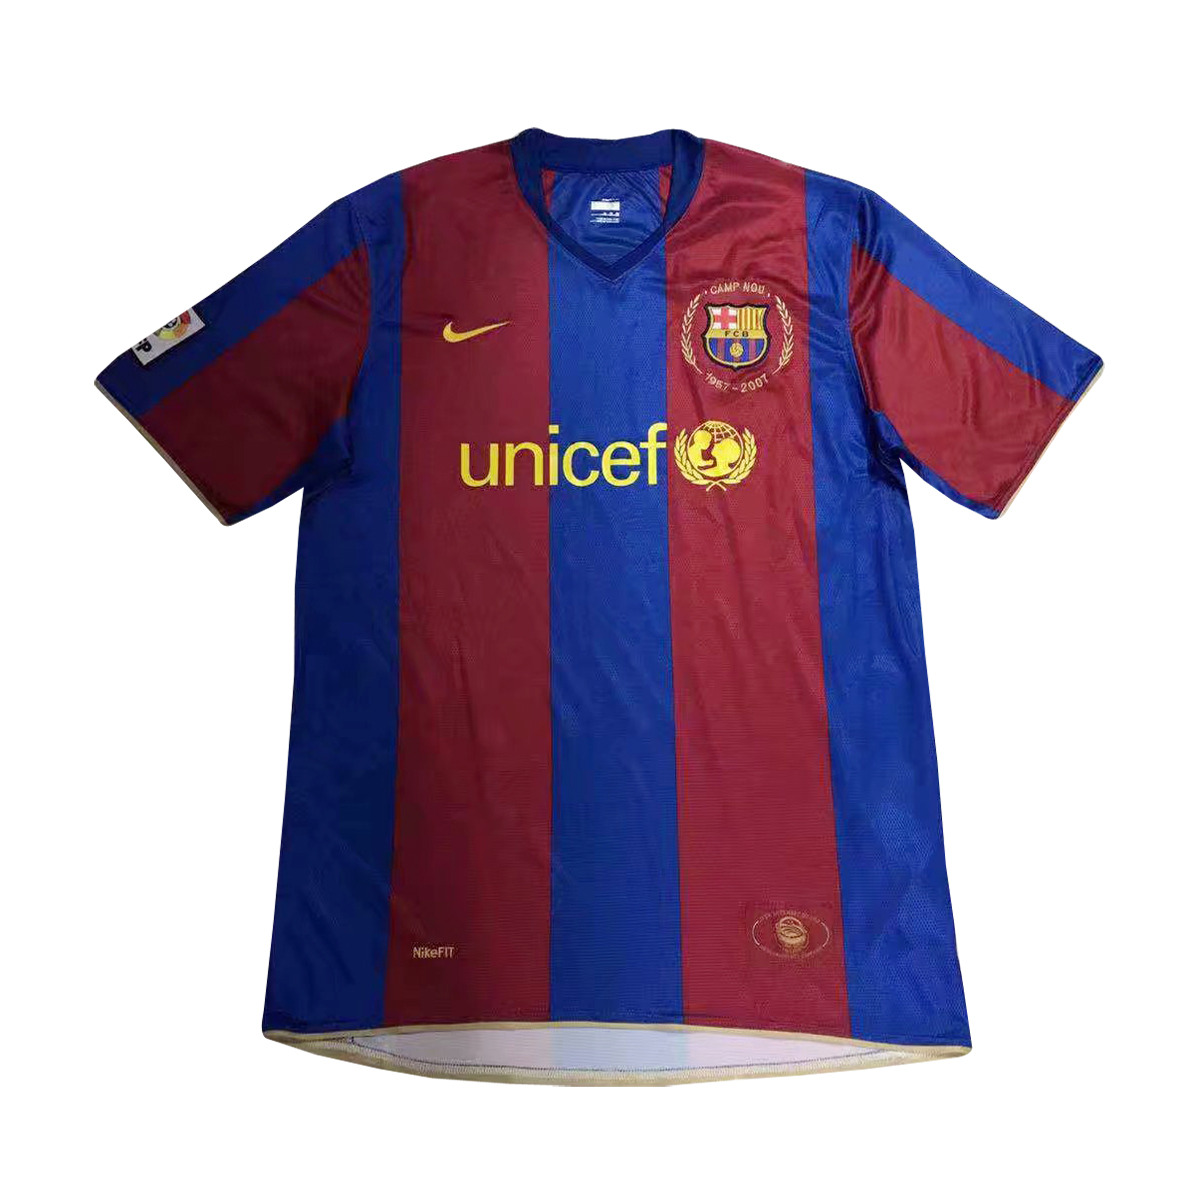 1ceb6c79d18 US  17.8 - Barcelona Retro Home Jersey Men s 2007 08 - www.fcsoccerworld.com